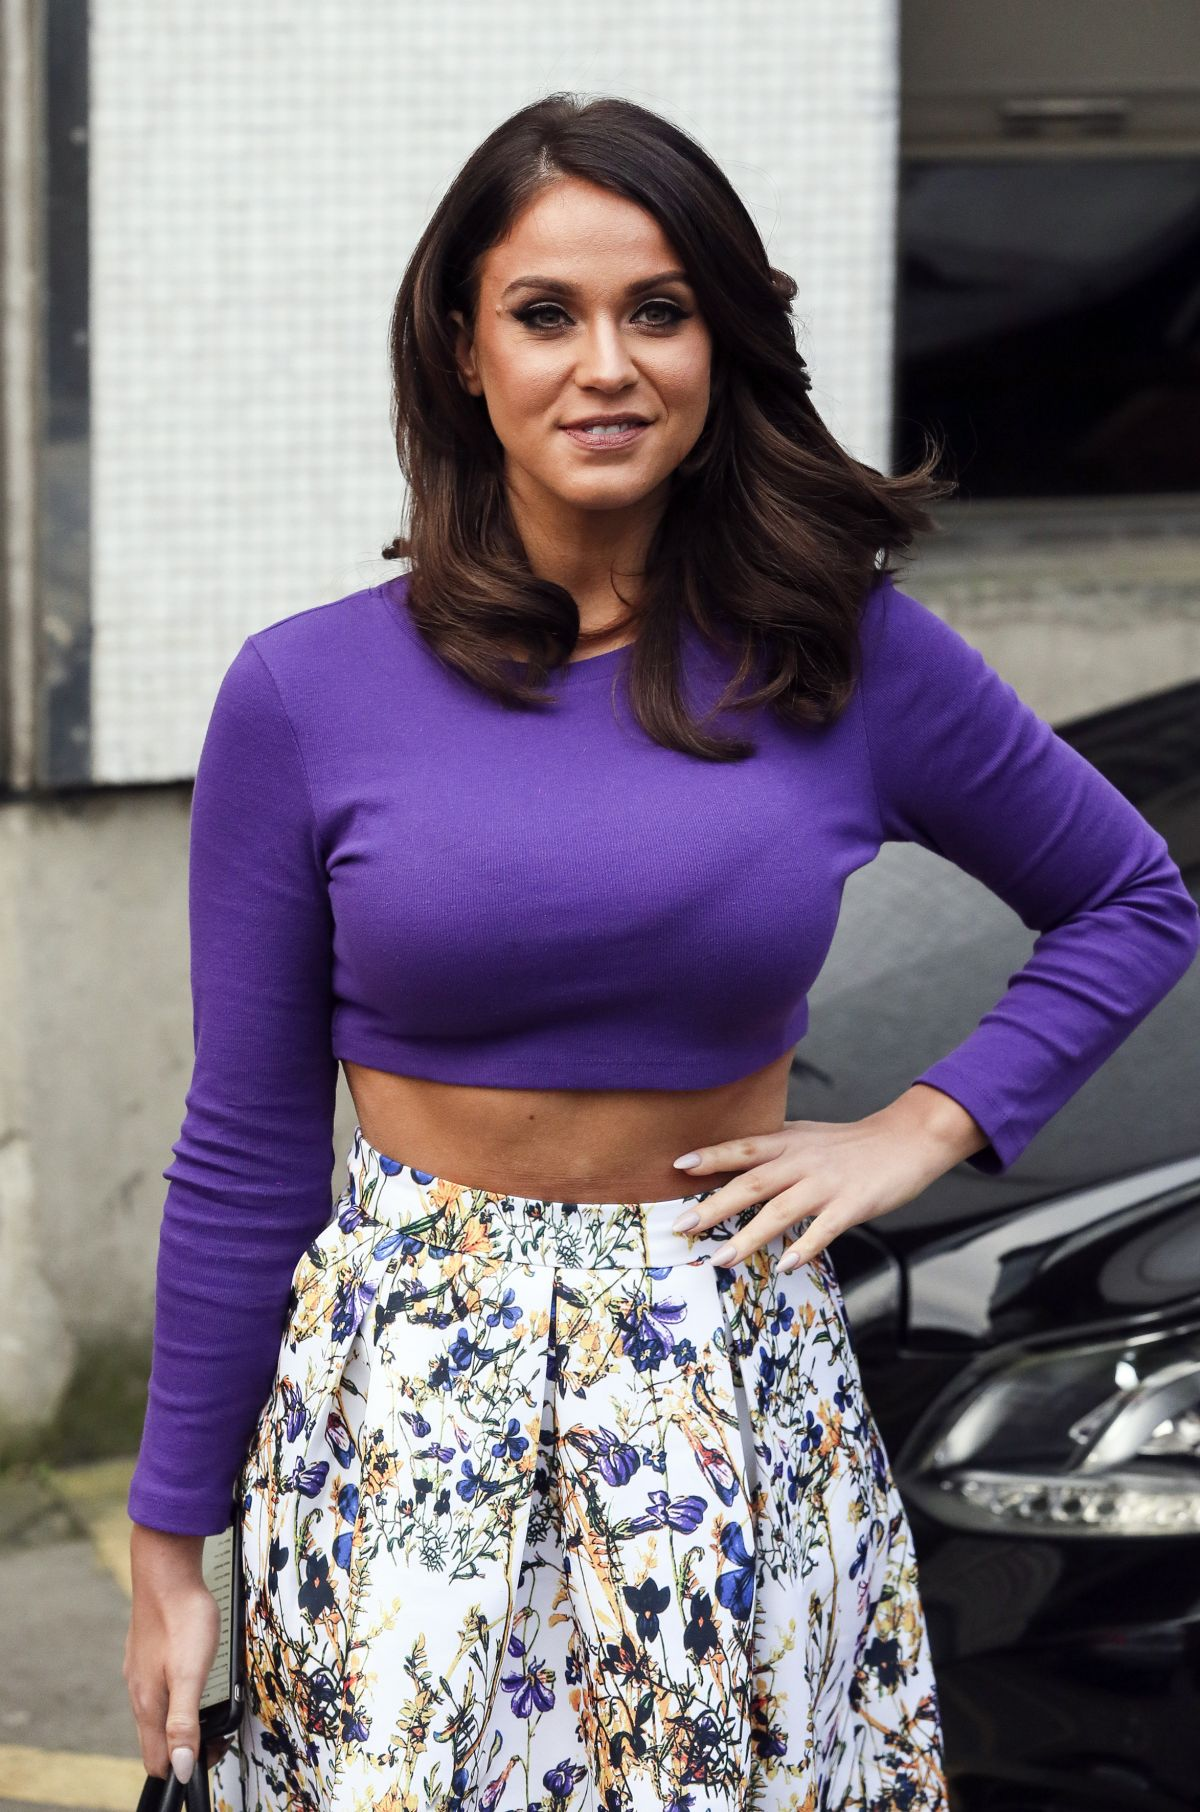 vicky pattison - photo #4